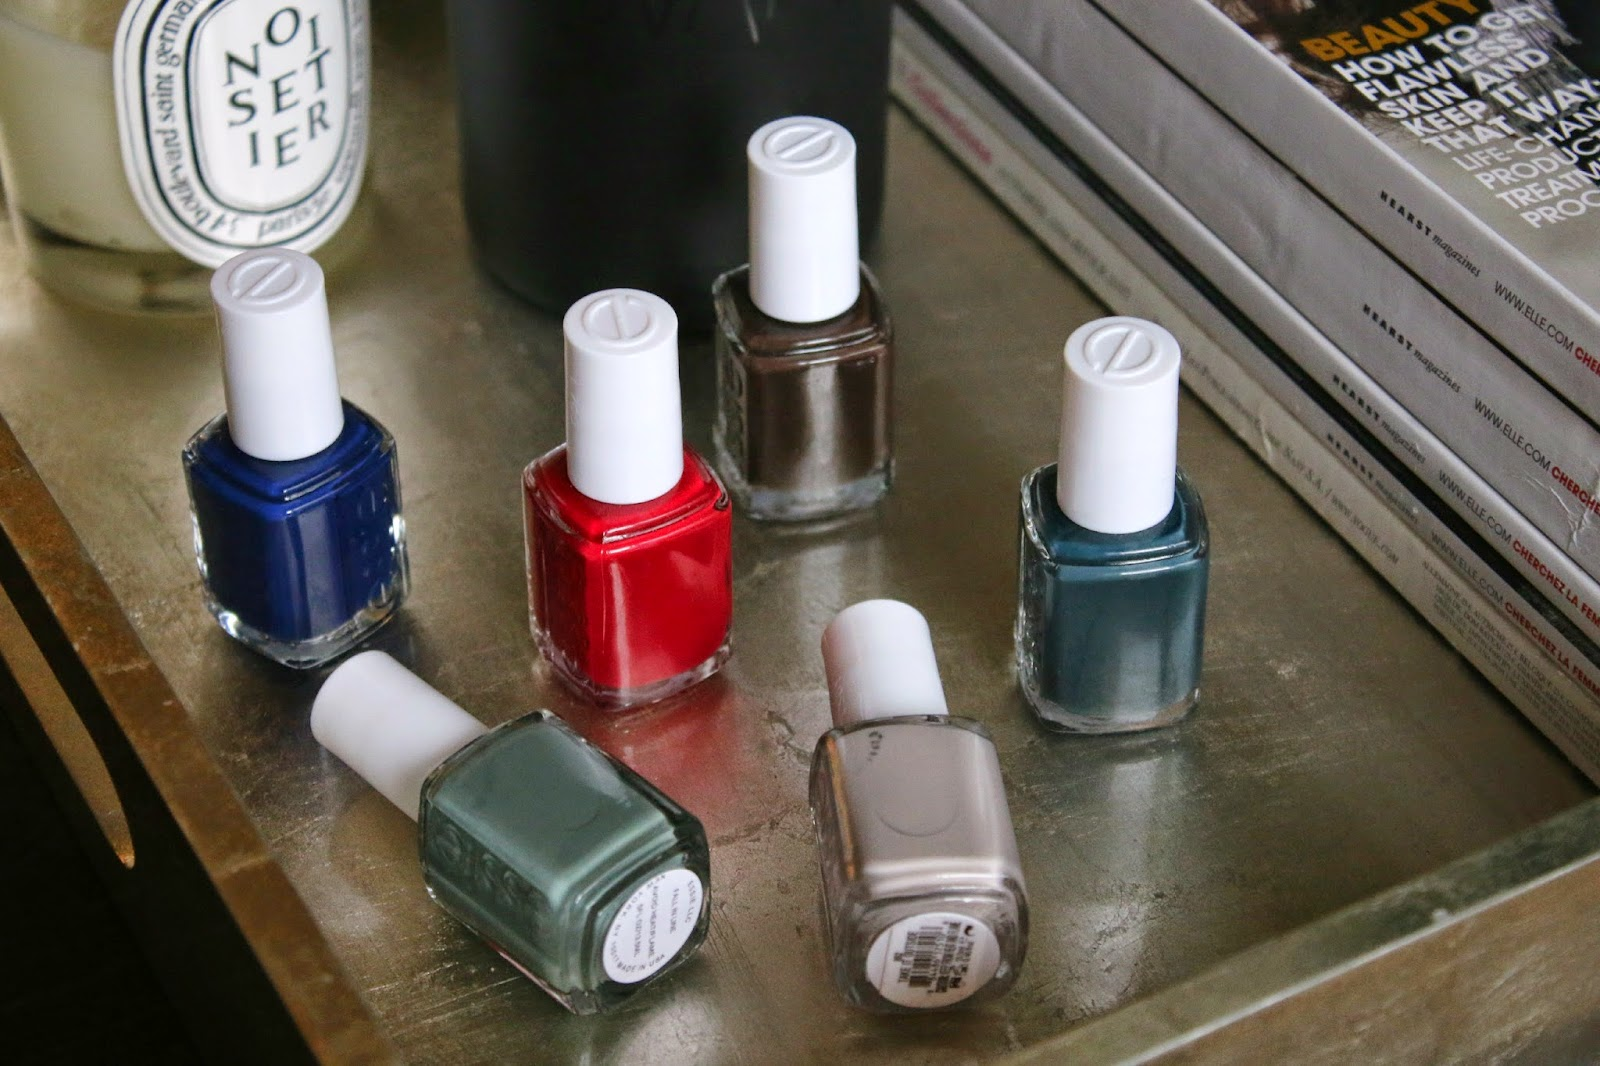 Essie Fall 2014 Collection with swatches on fair skin